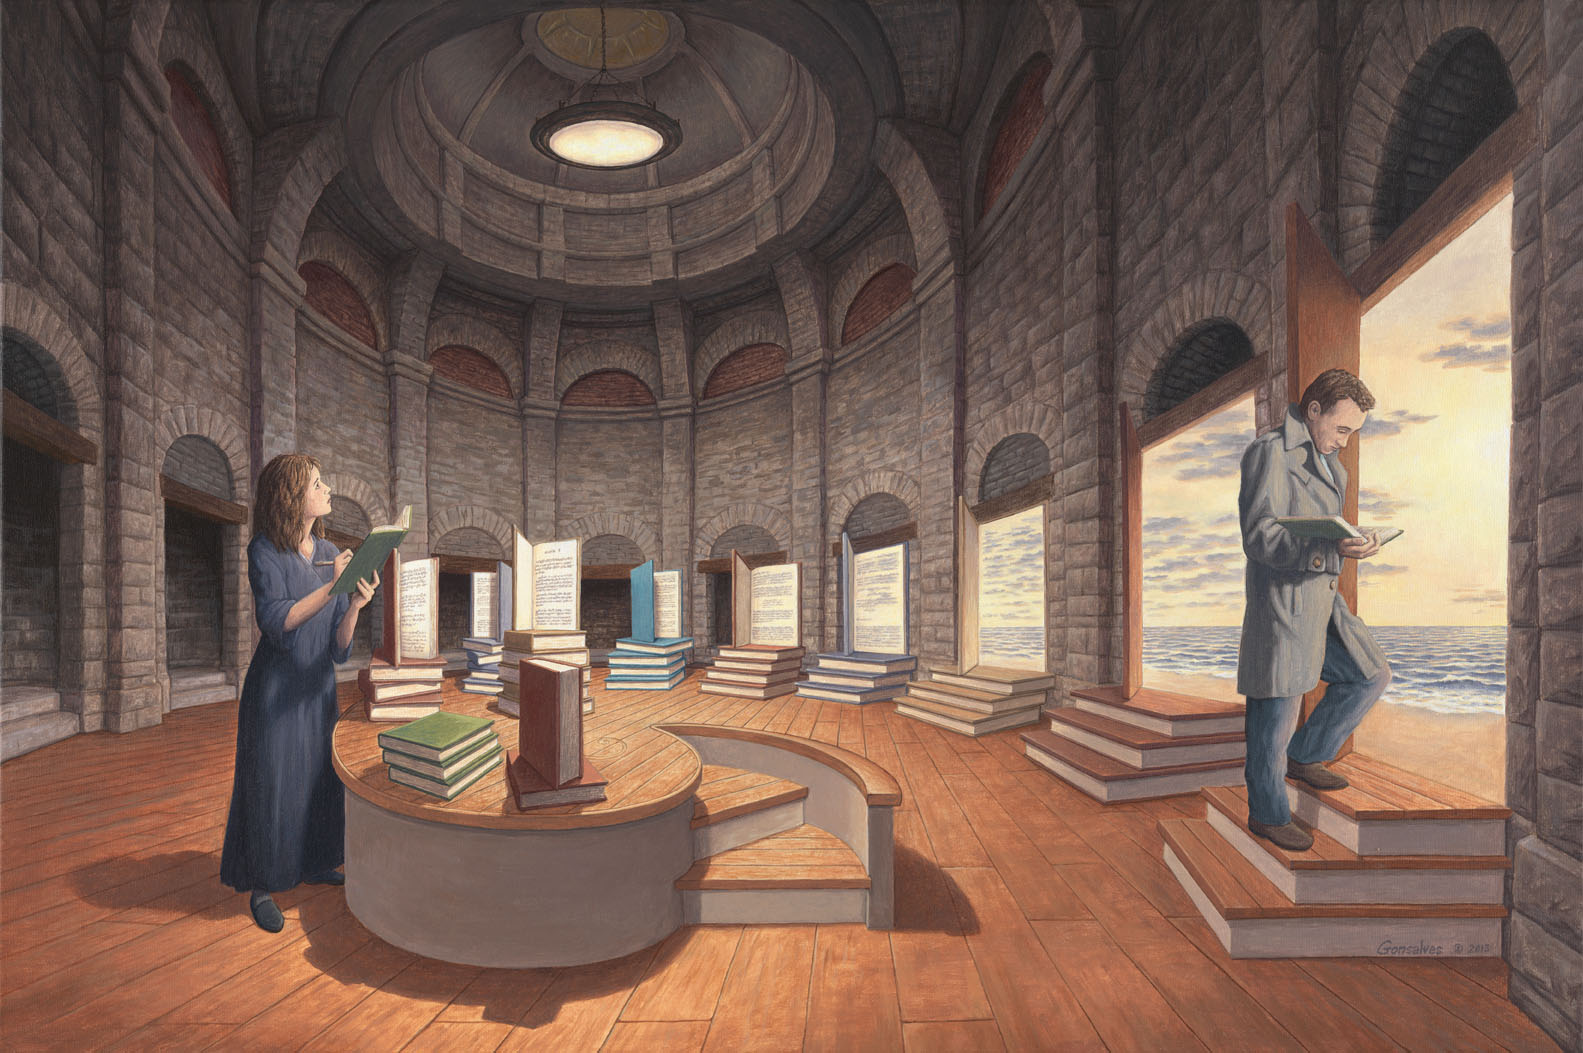 Rob Gonsalves - The Space Between Words